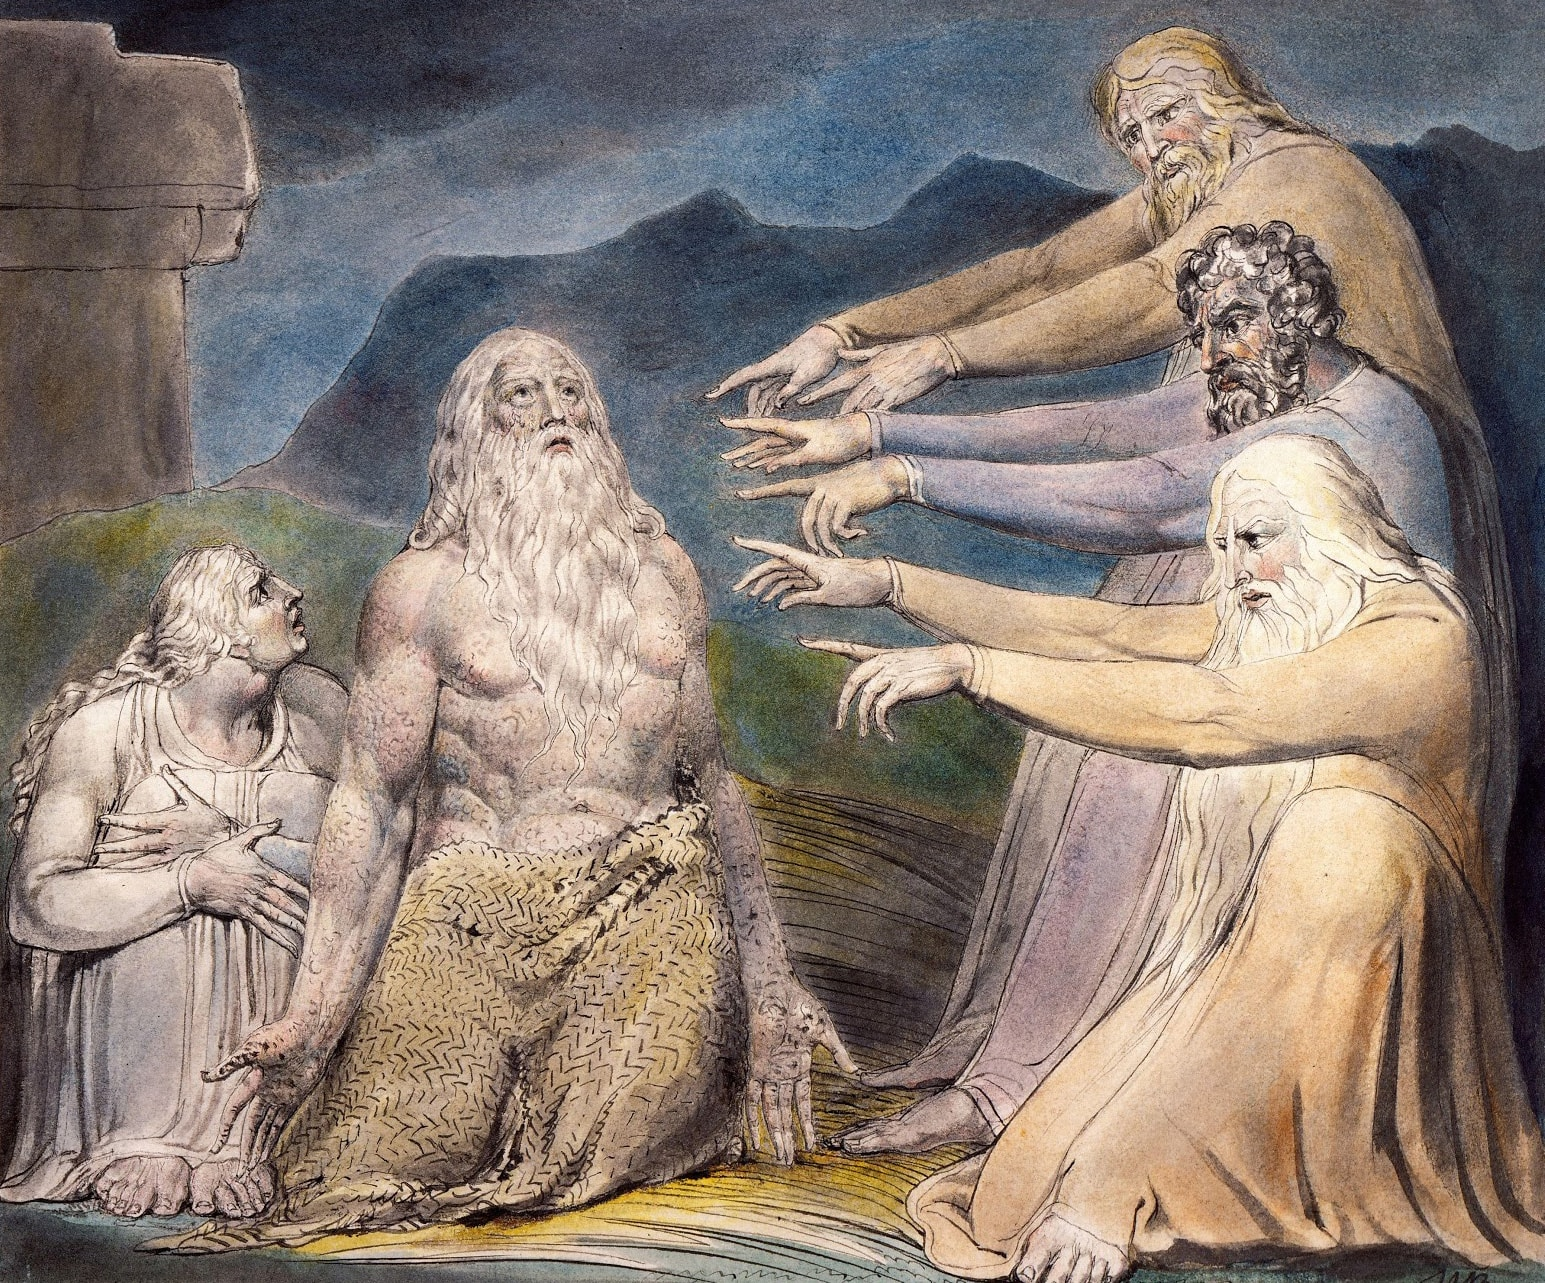 a biography of william blake William blake biography - william blake was born on november 28, 1757 in london, the third of five children his father james was a hosier, and co.